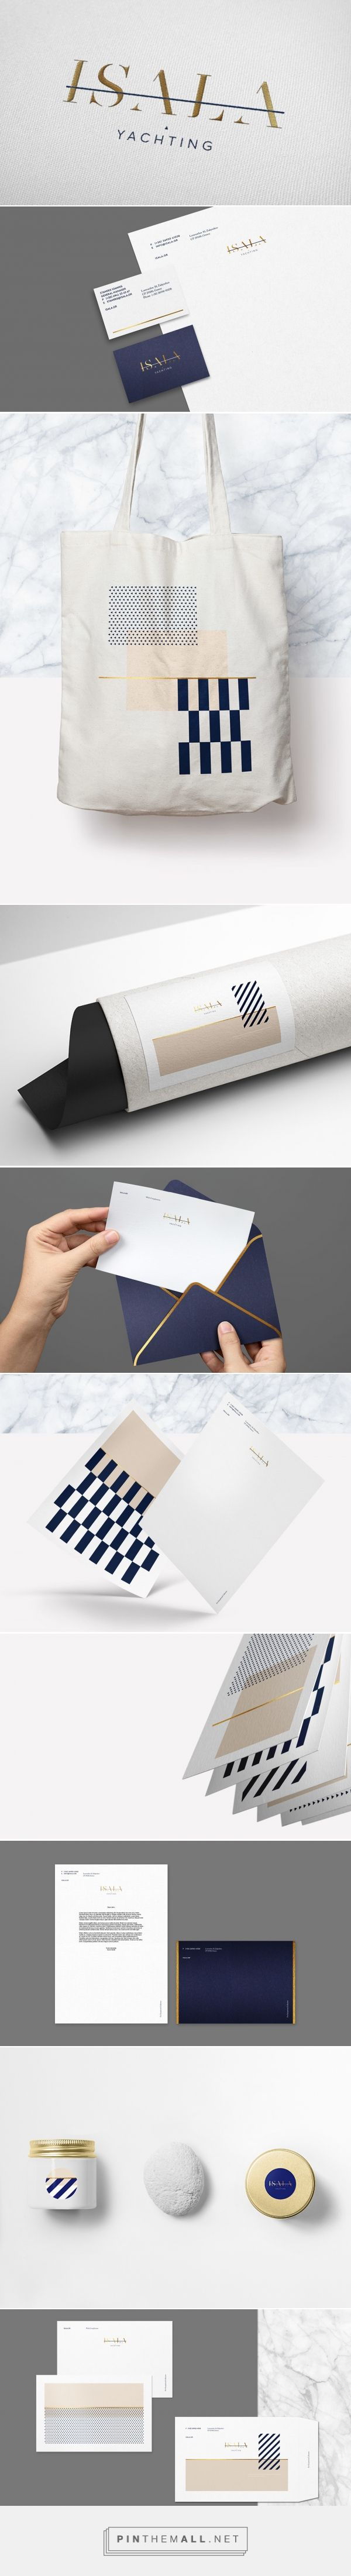 Isala Yachting Brand Identity by Luminous Design Group | Fivestar Branding Agency – Design and Branding Agency & Curated Inspiration Gallery